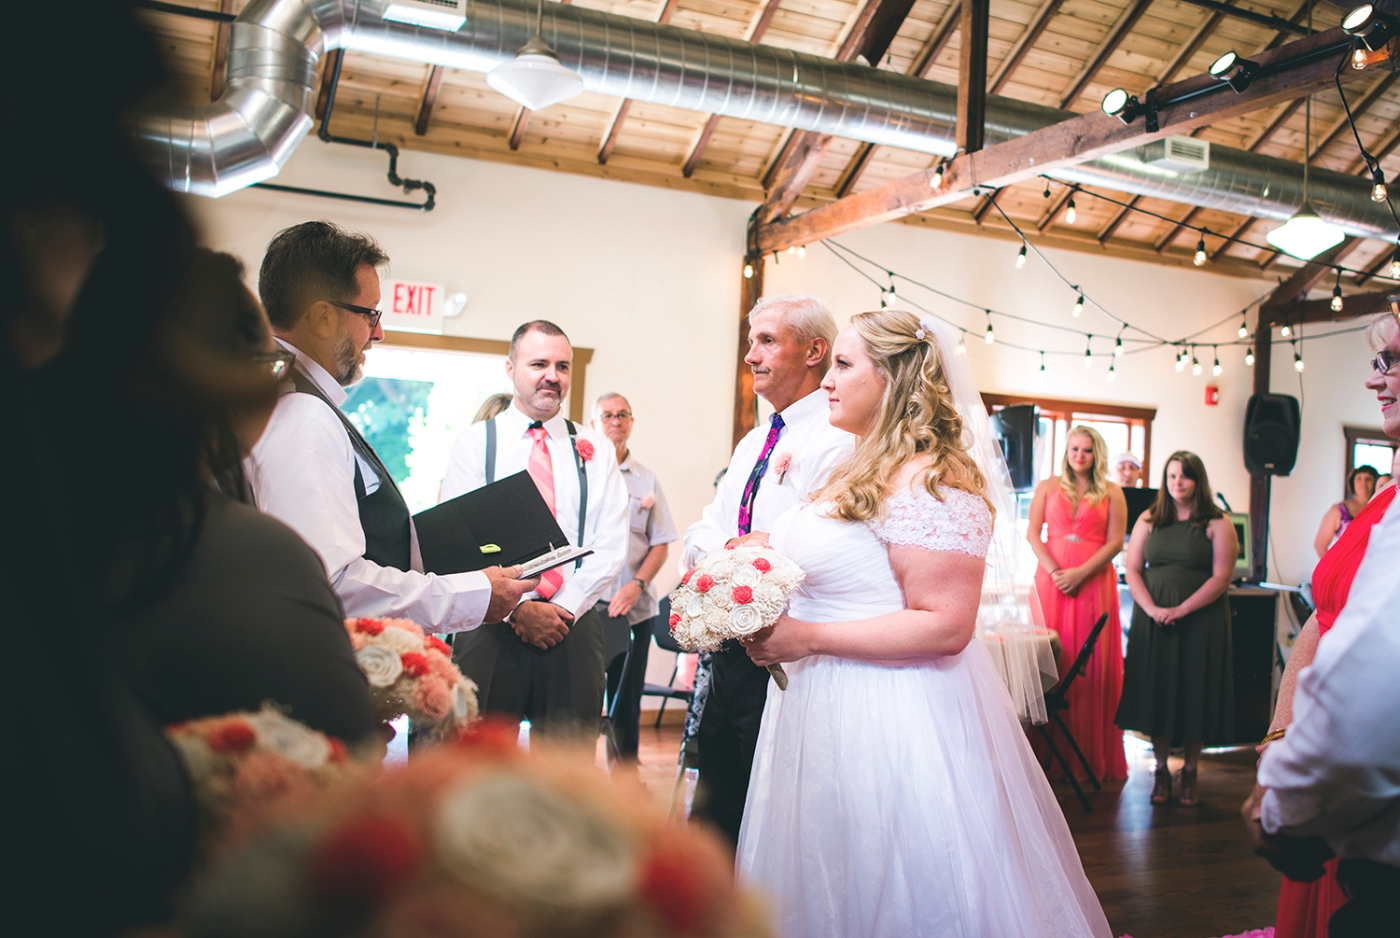 Jane_S_photography_Katie_and_Steve_2016_Des_Moines_Marina_Wedding_DSC_1674